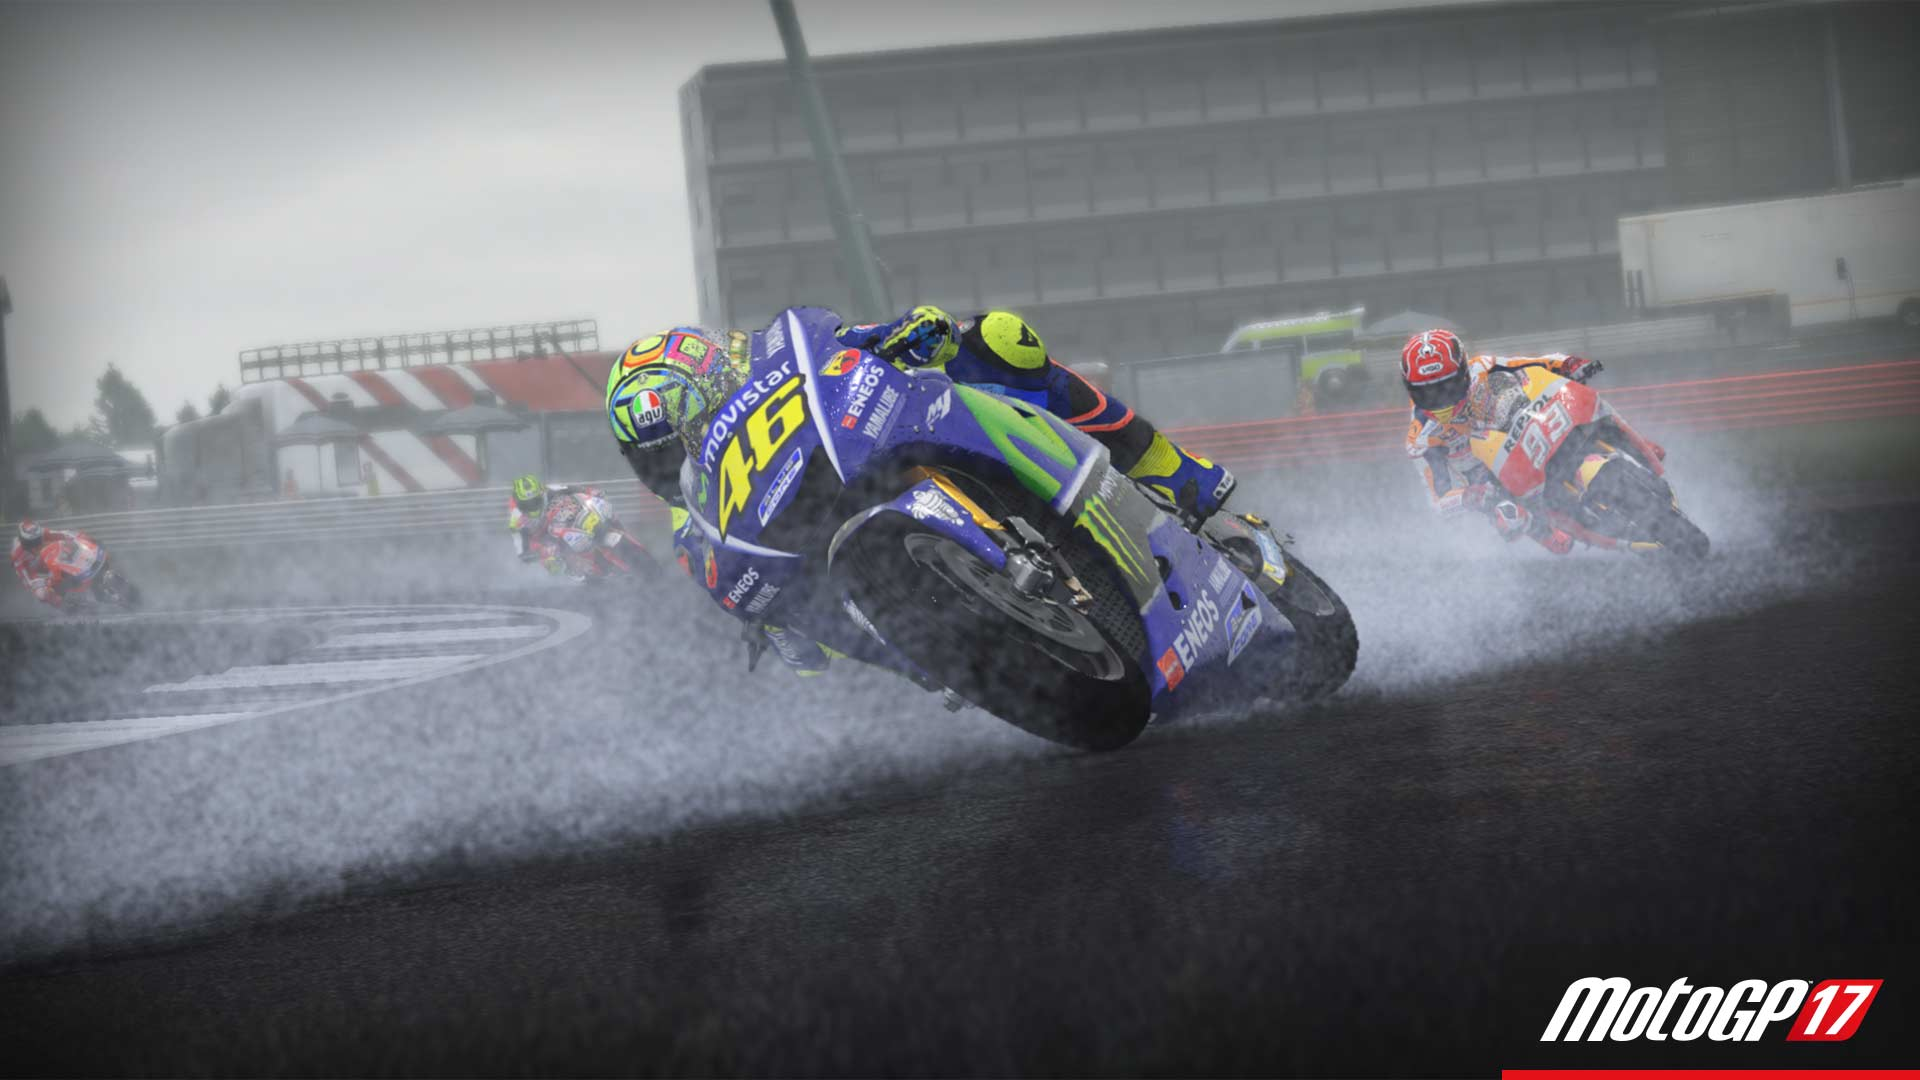 MotoGP 17 Launch images 7